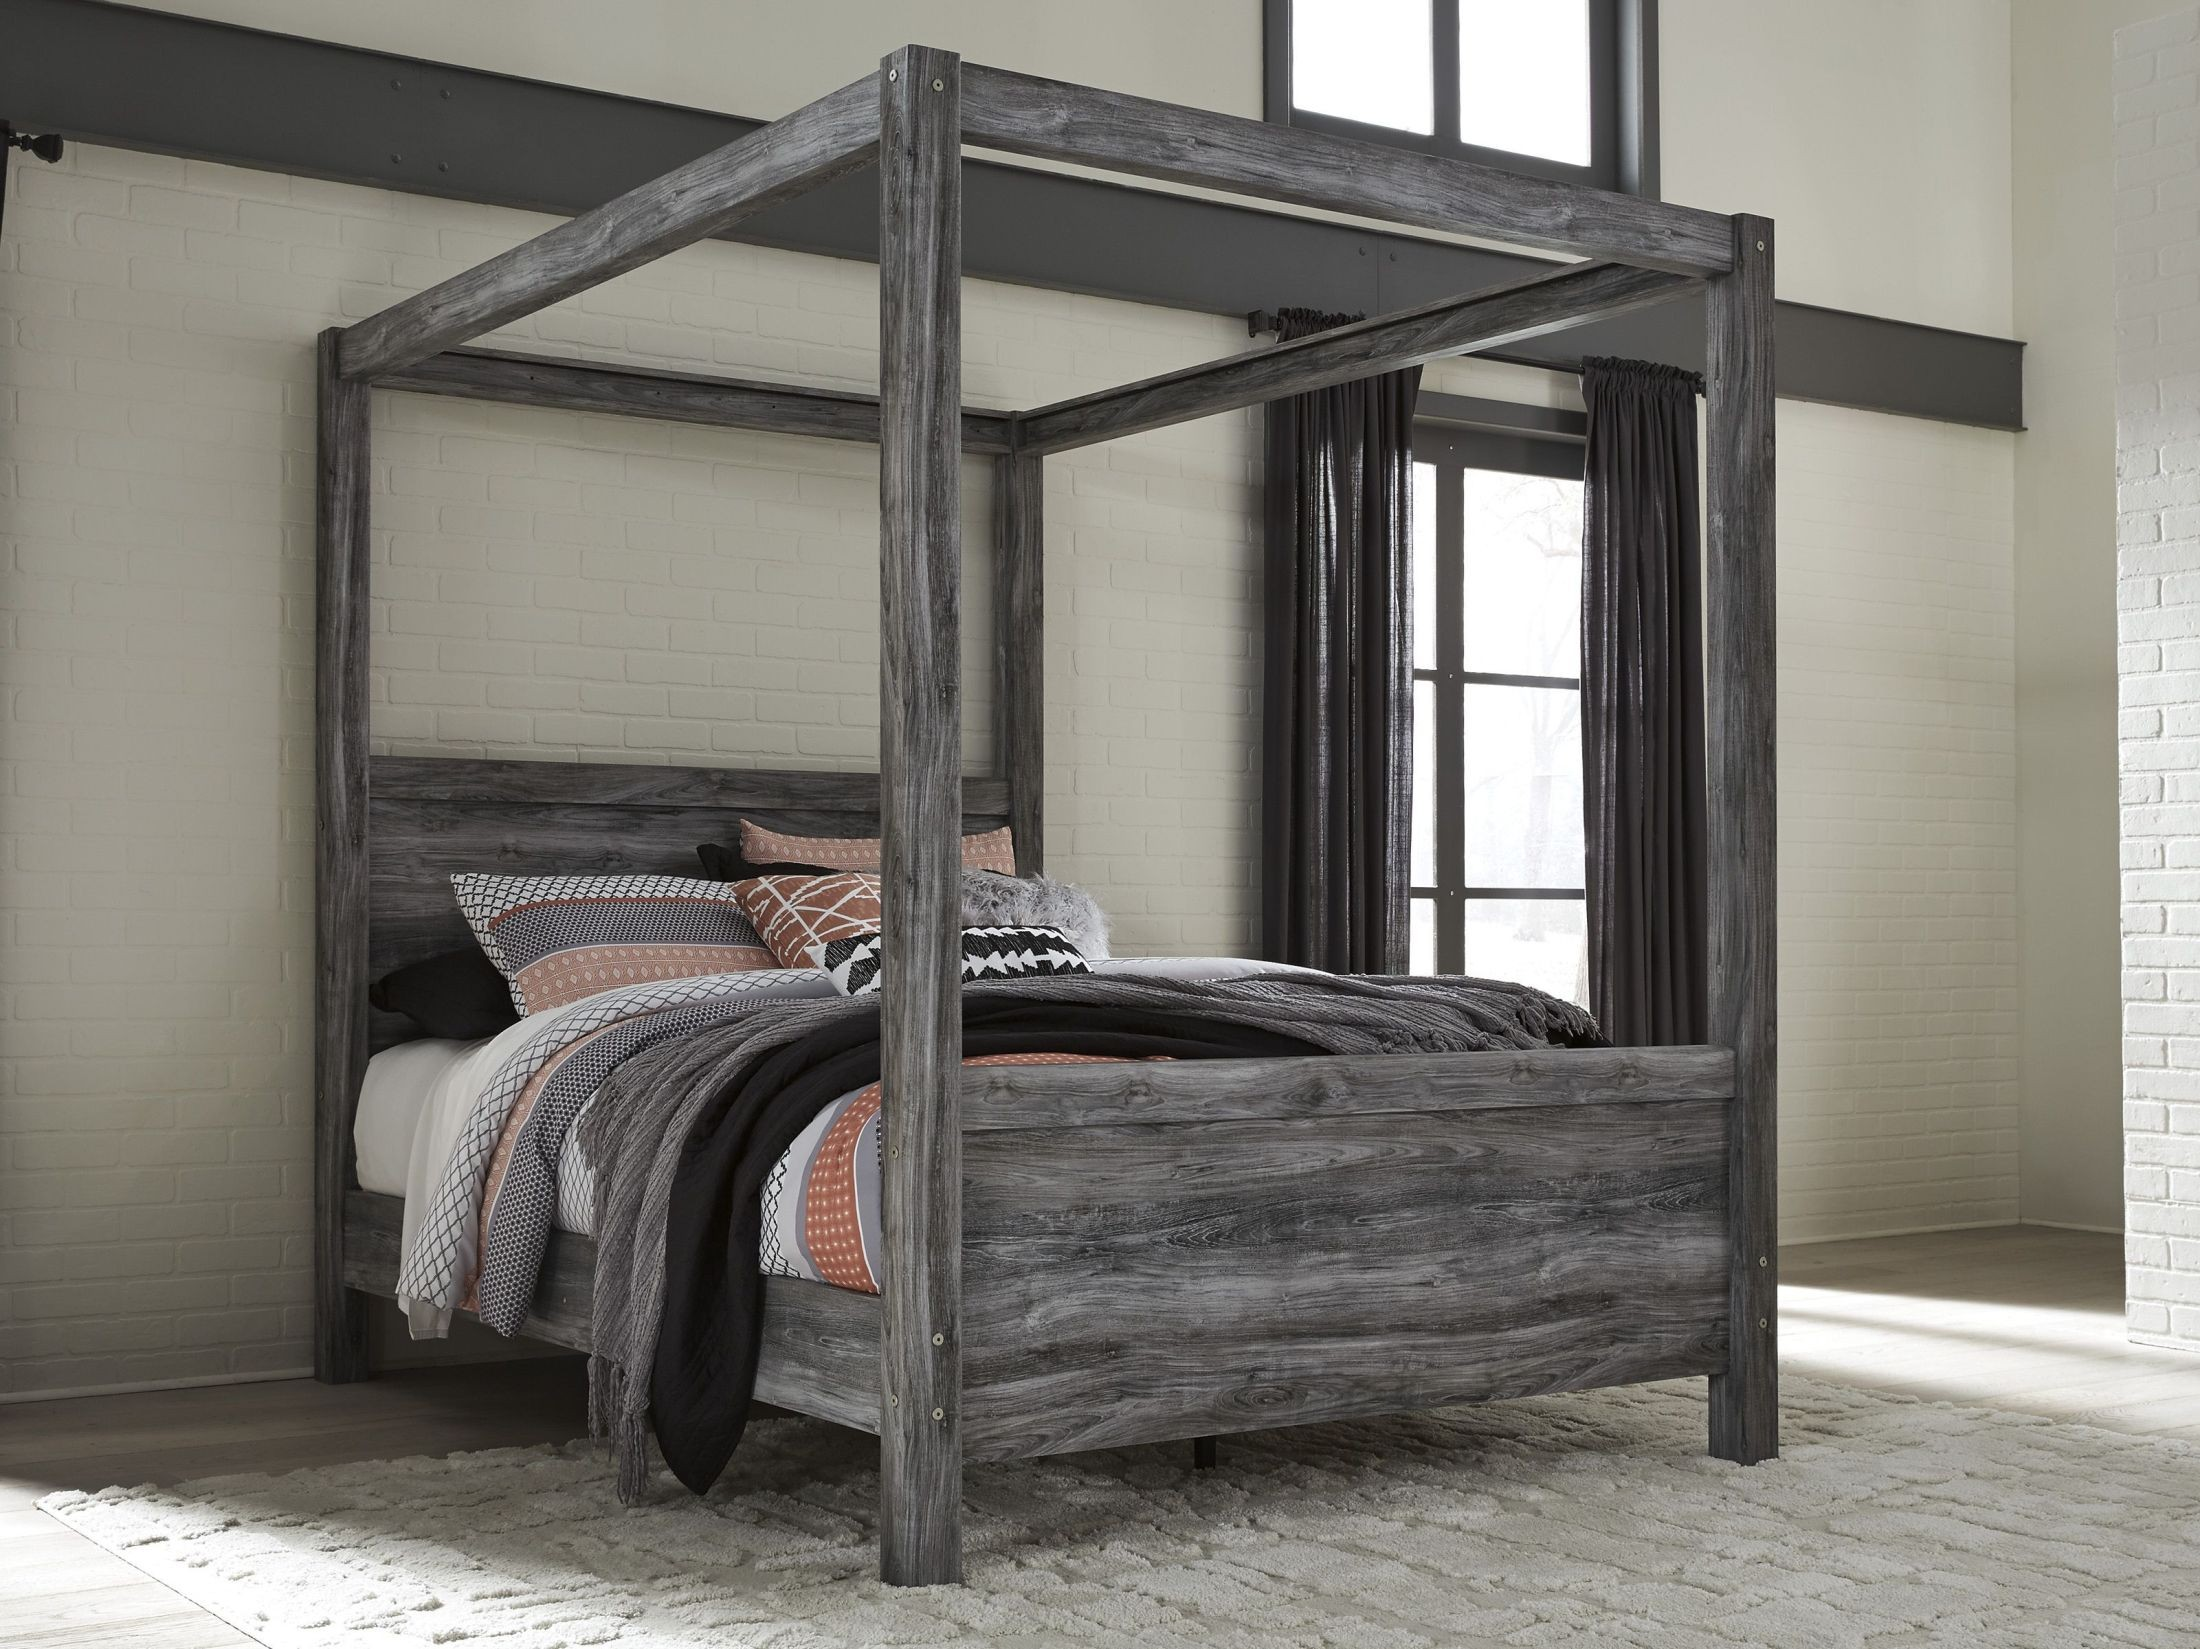 Baystorm Gray Queen Canopy Bed From Ashley